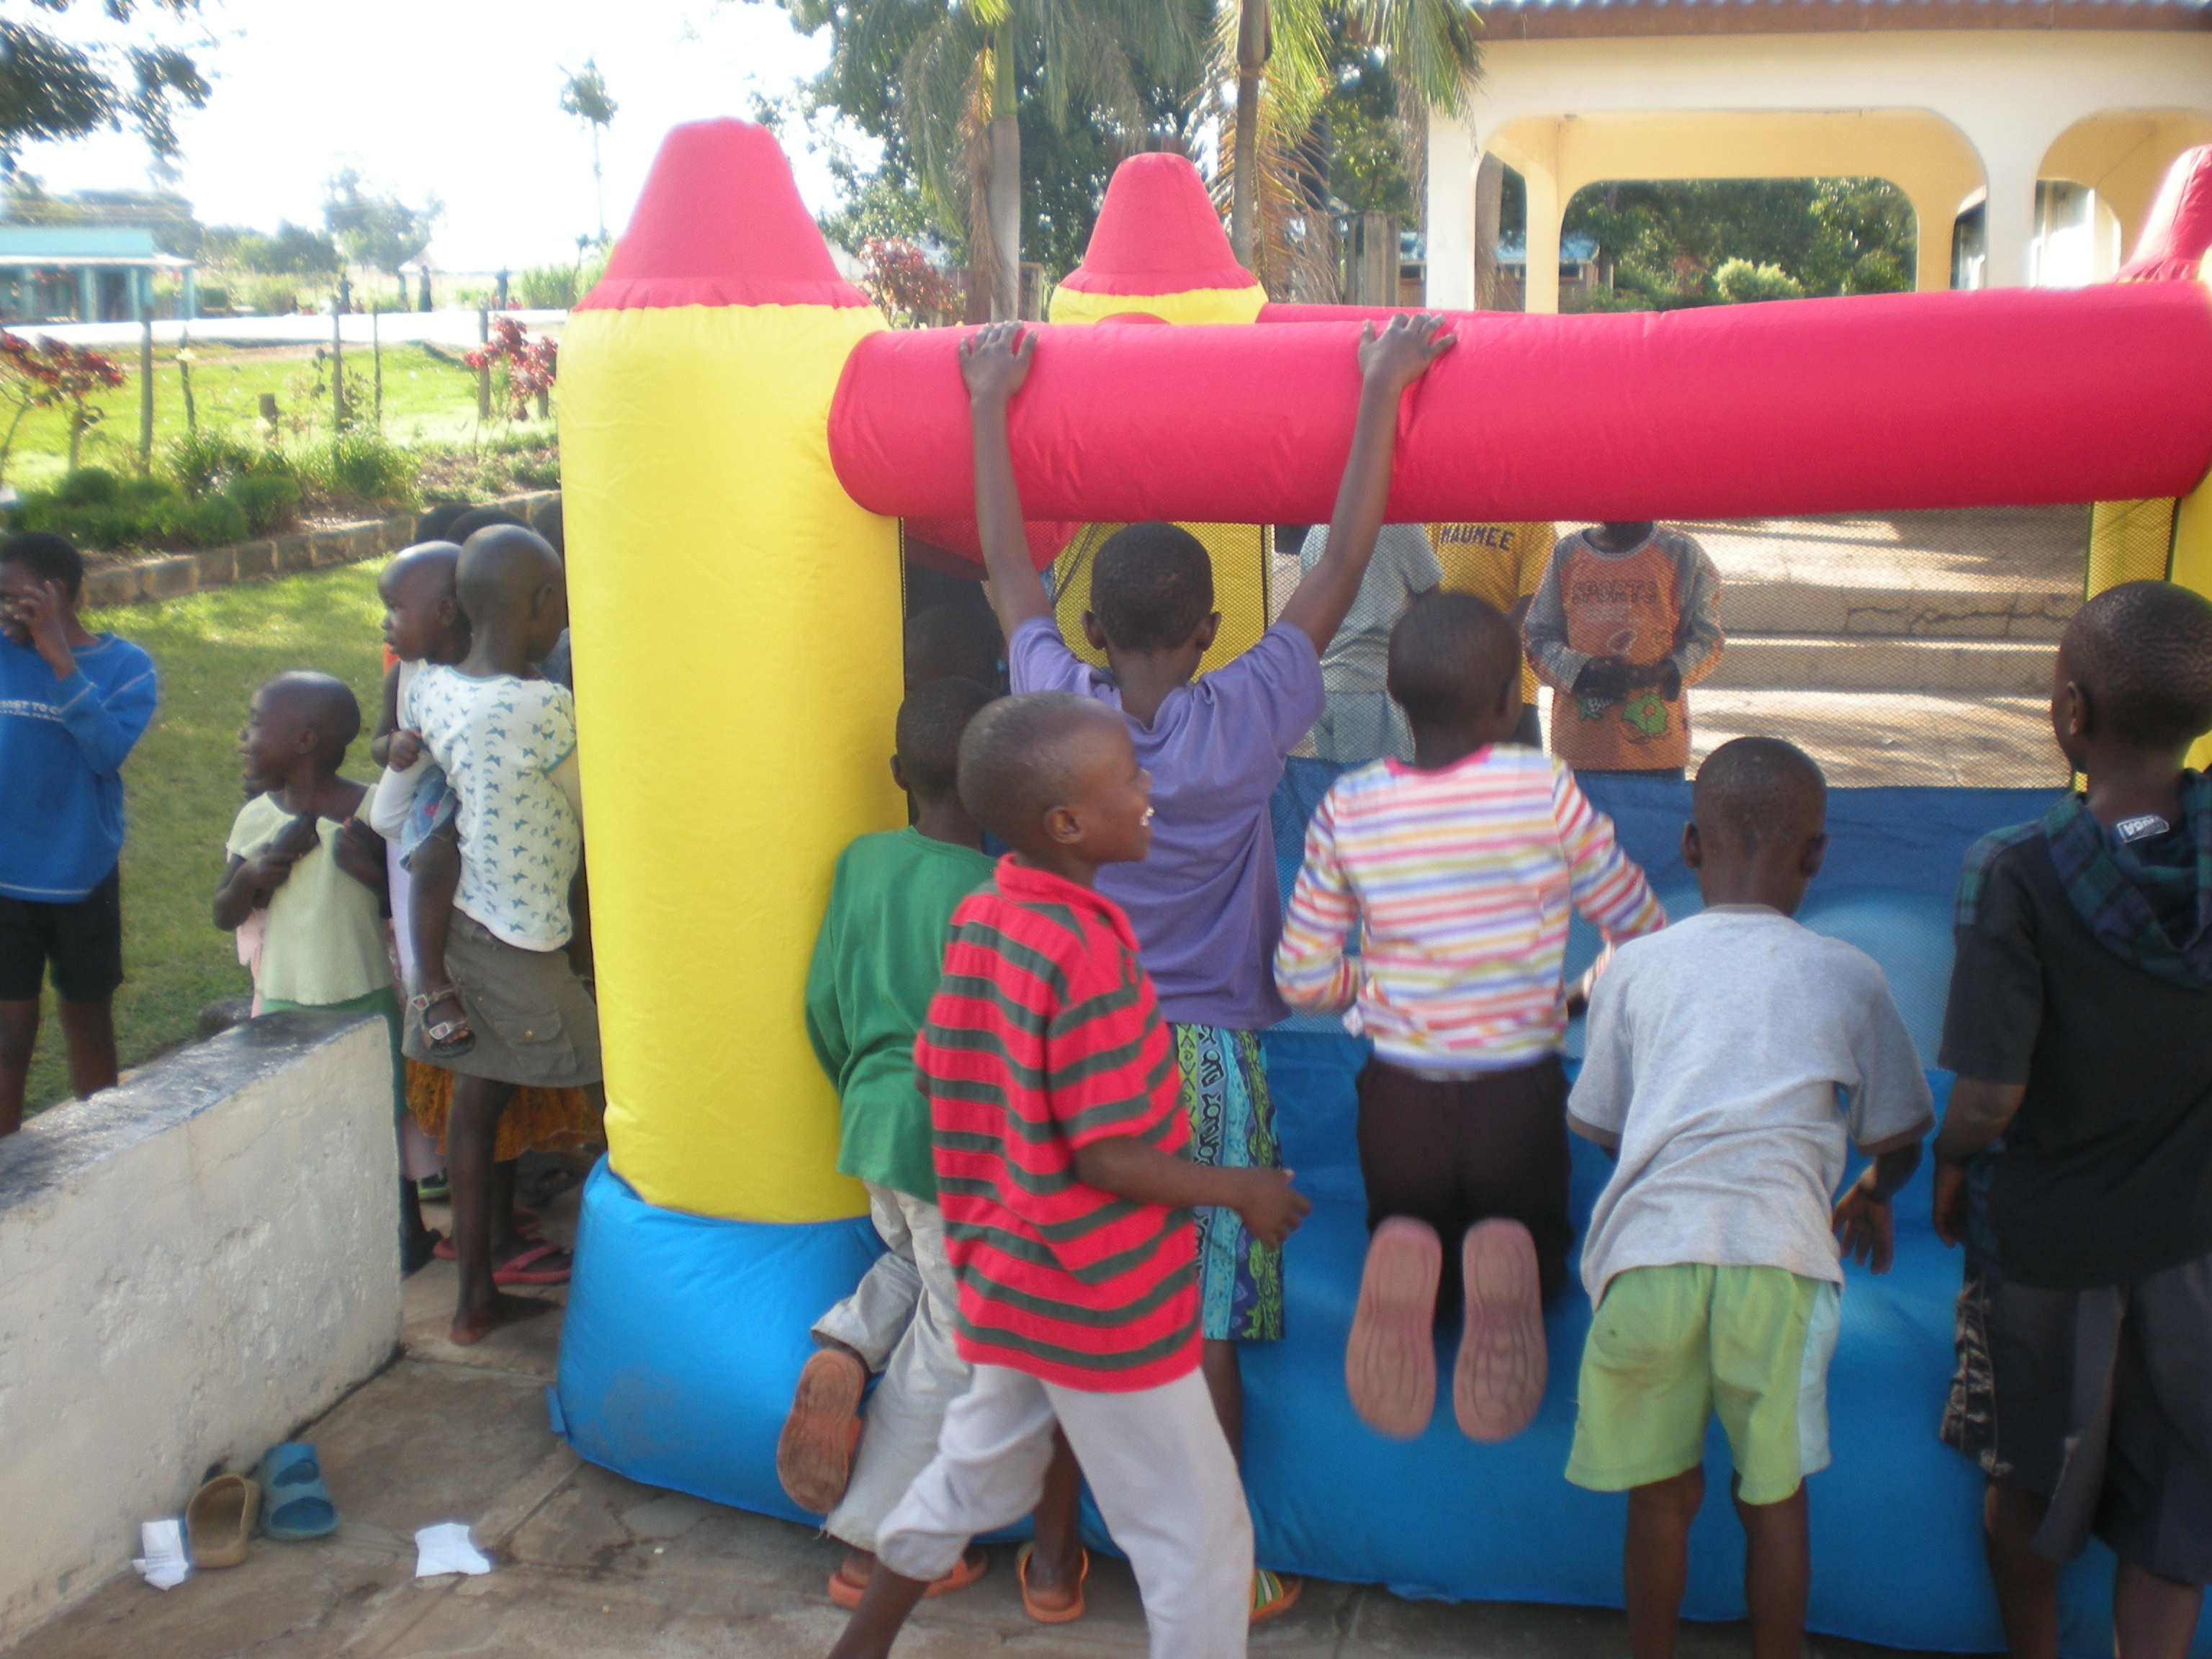 Kids & Bounce House